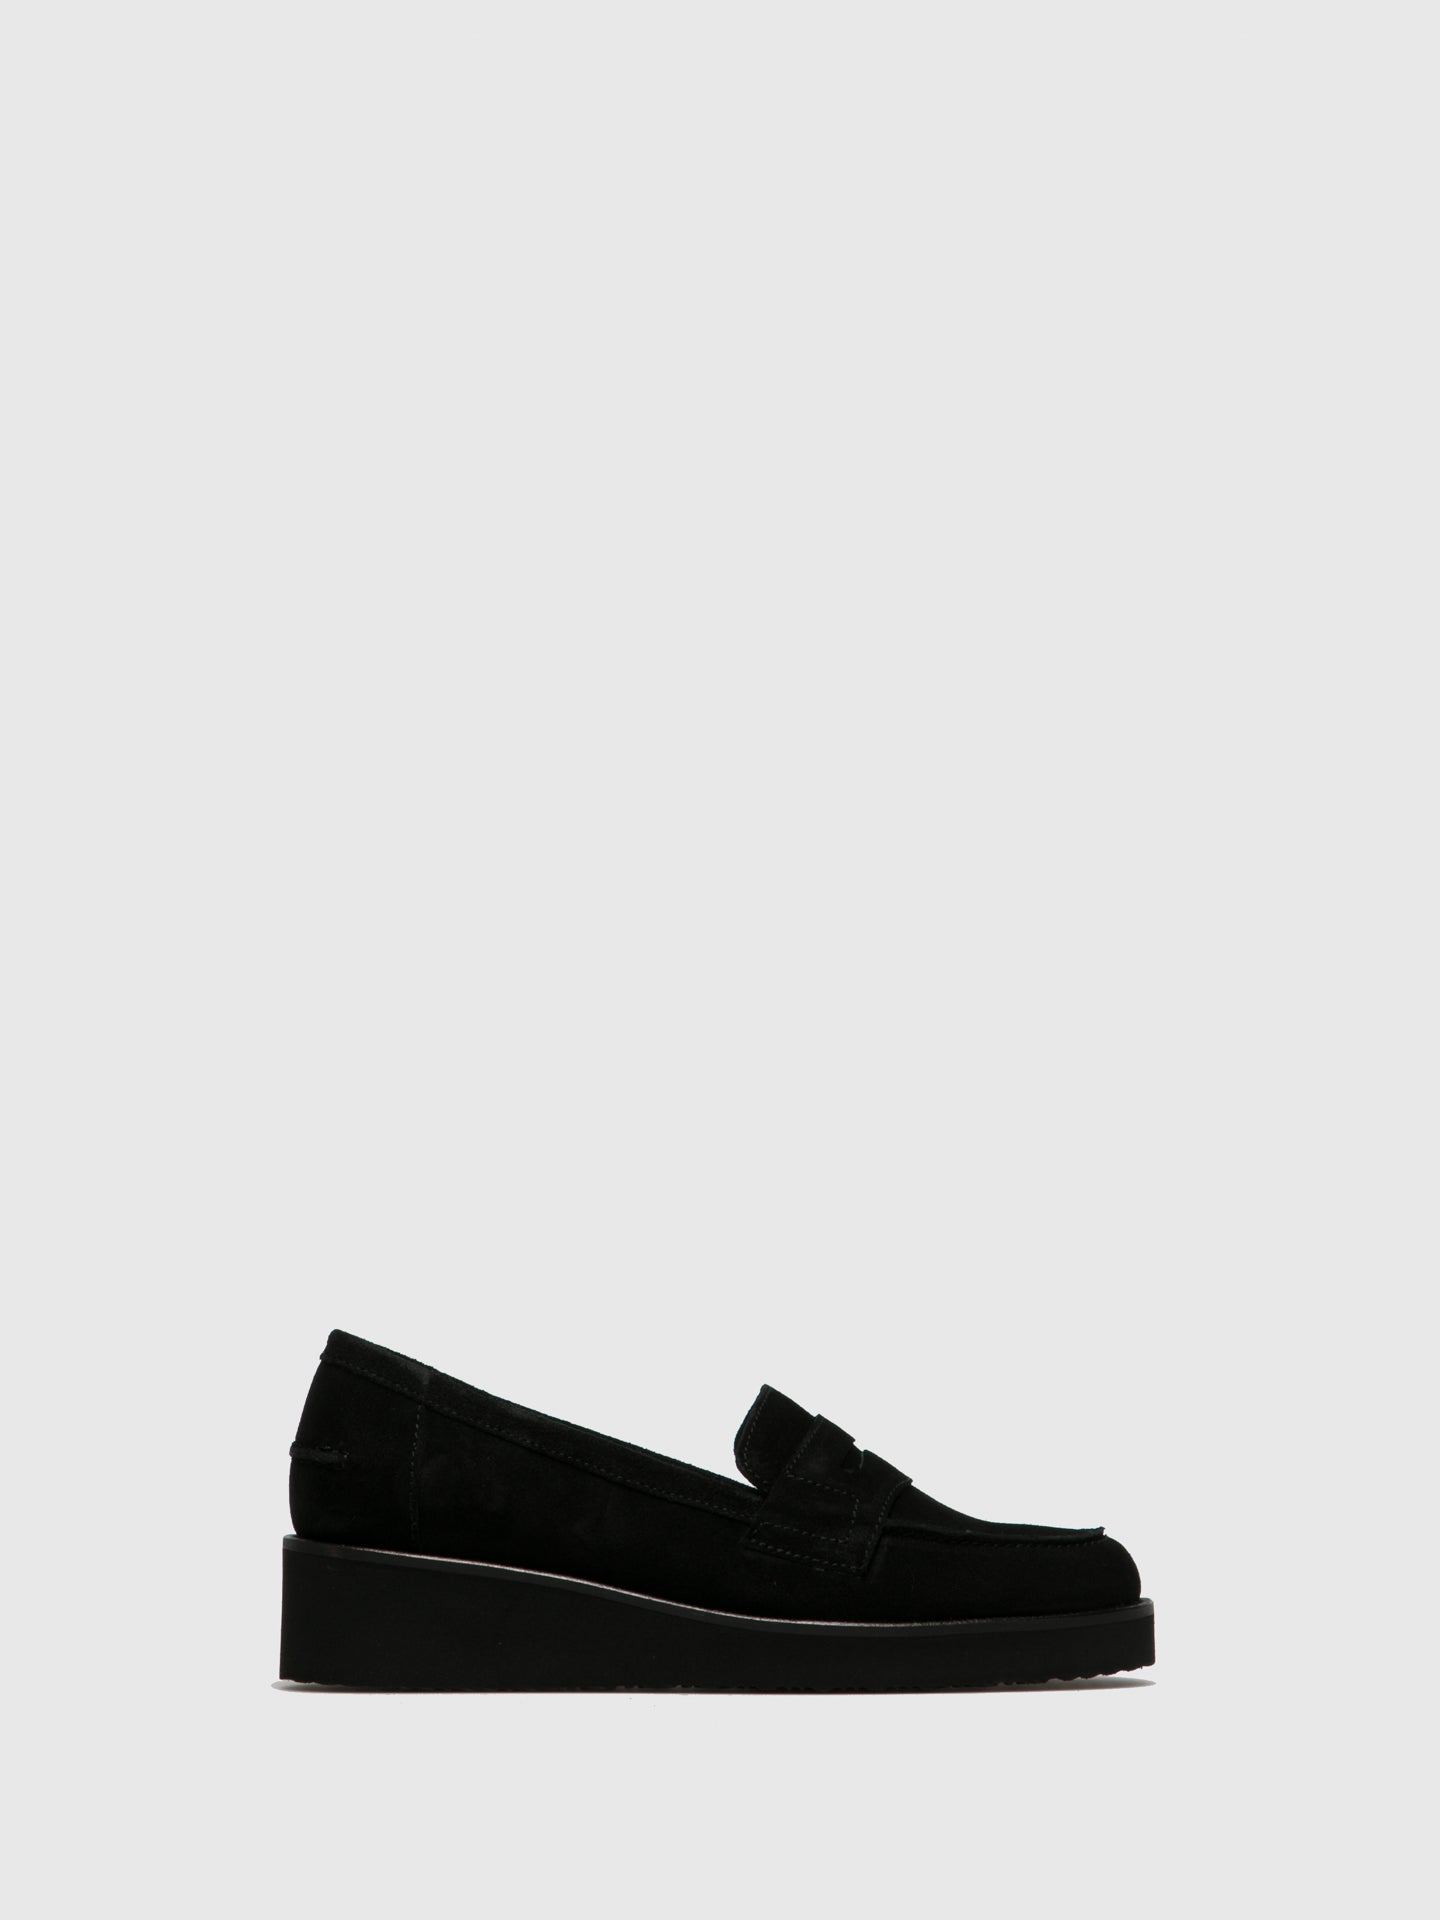 PintoDiBlu Black Suede Mocassins Shoes